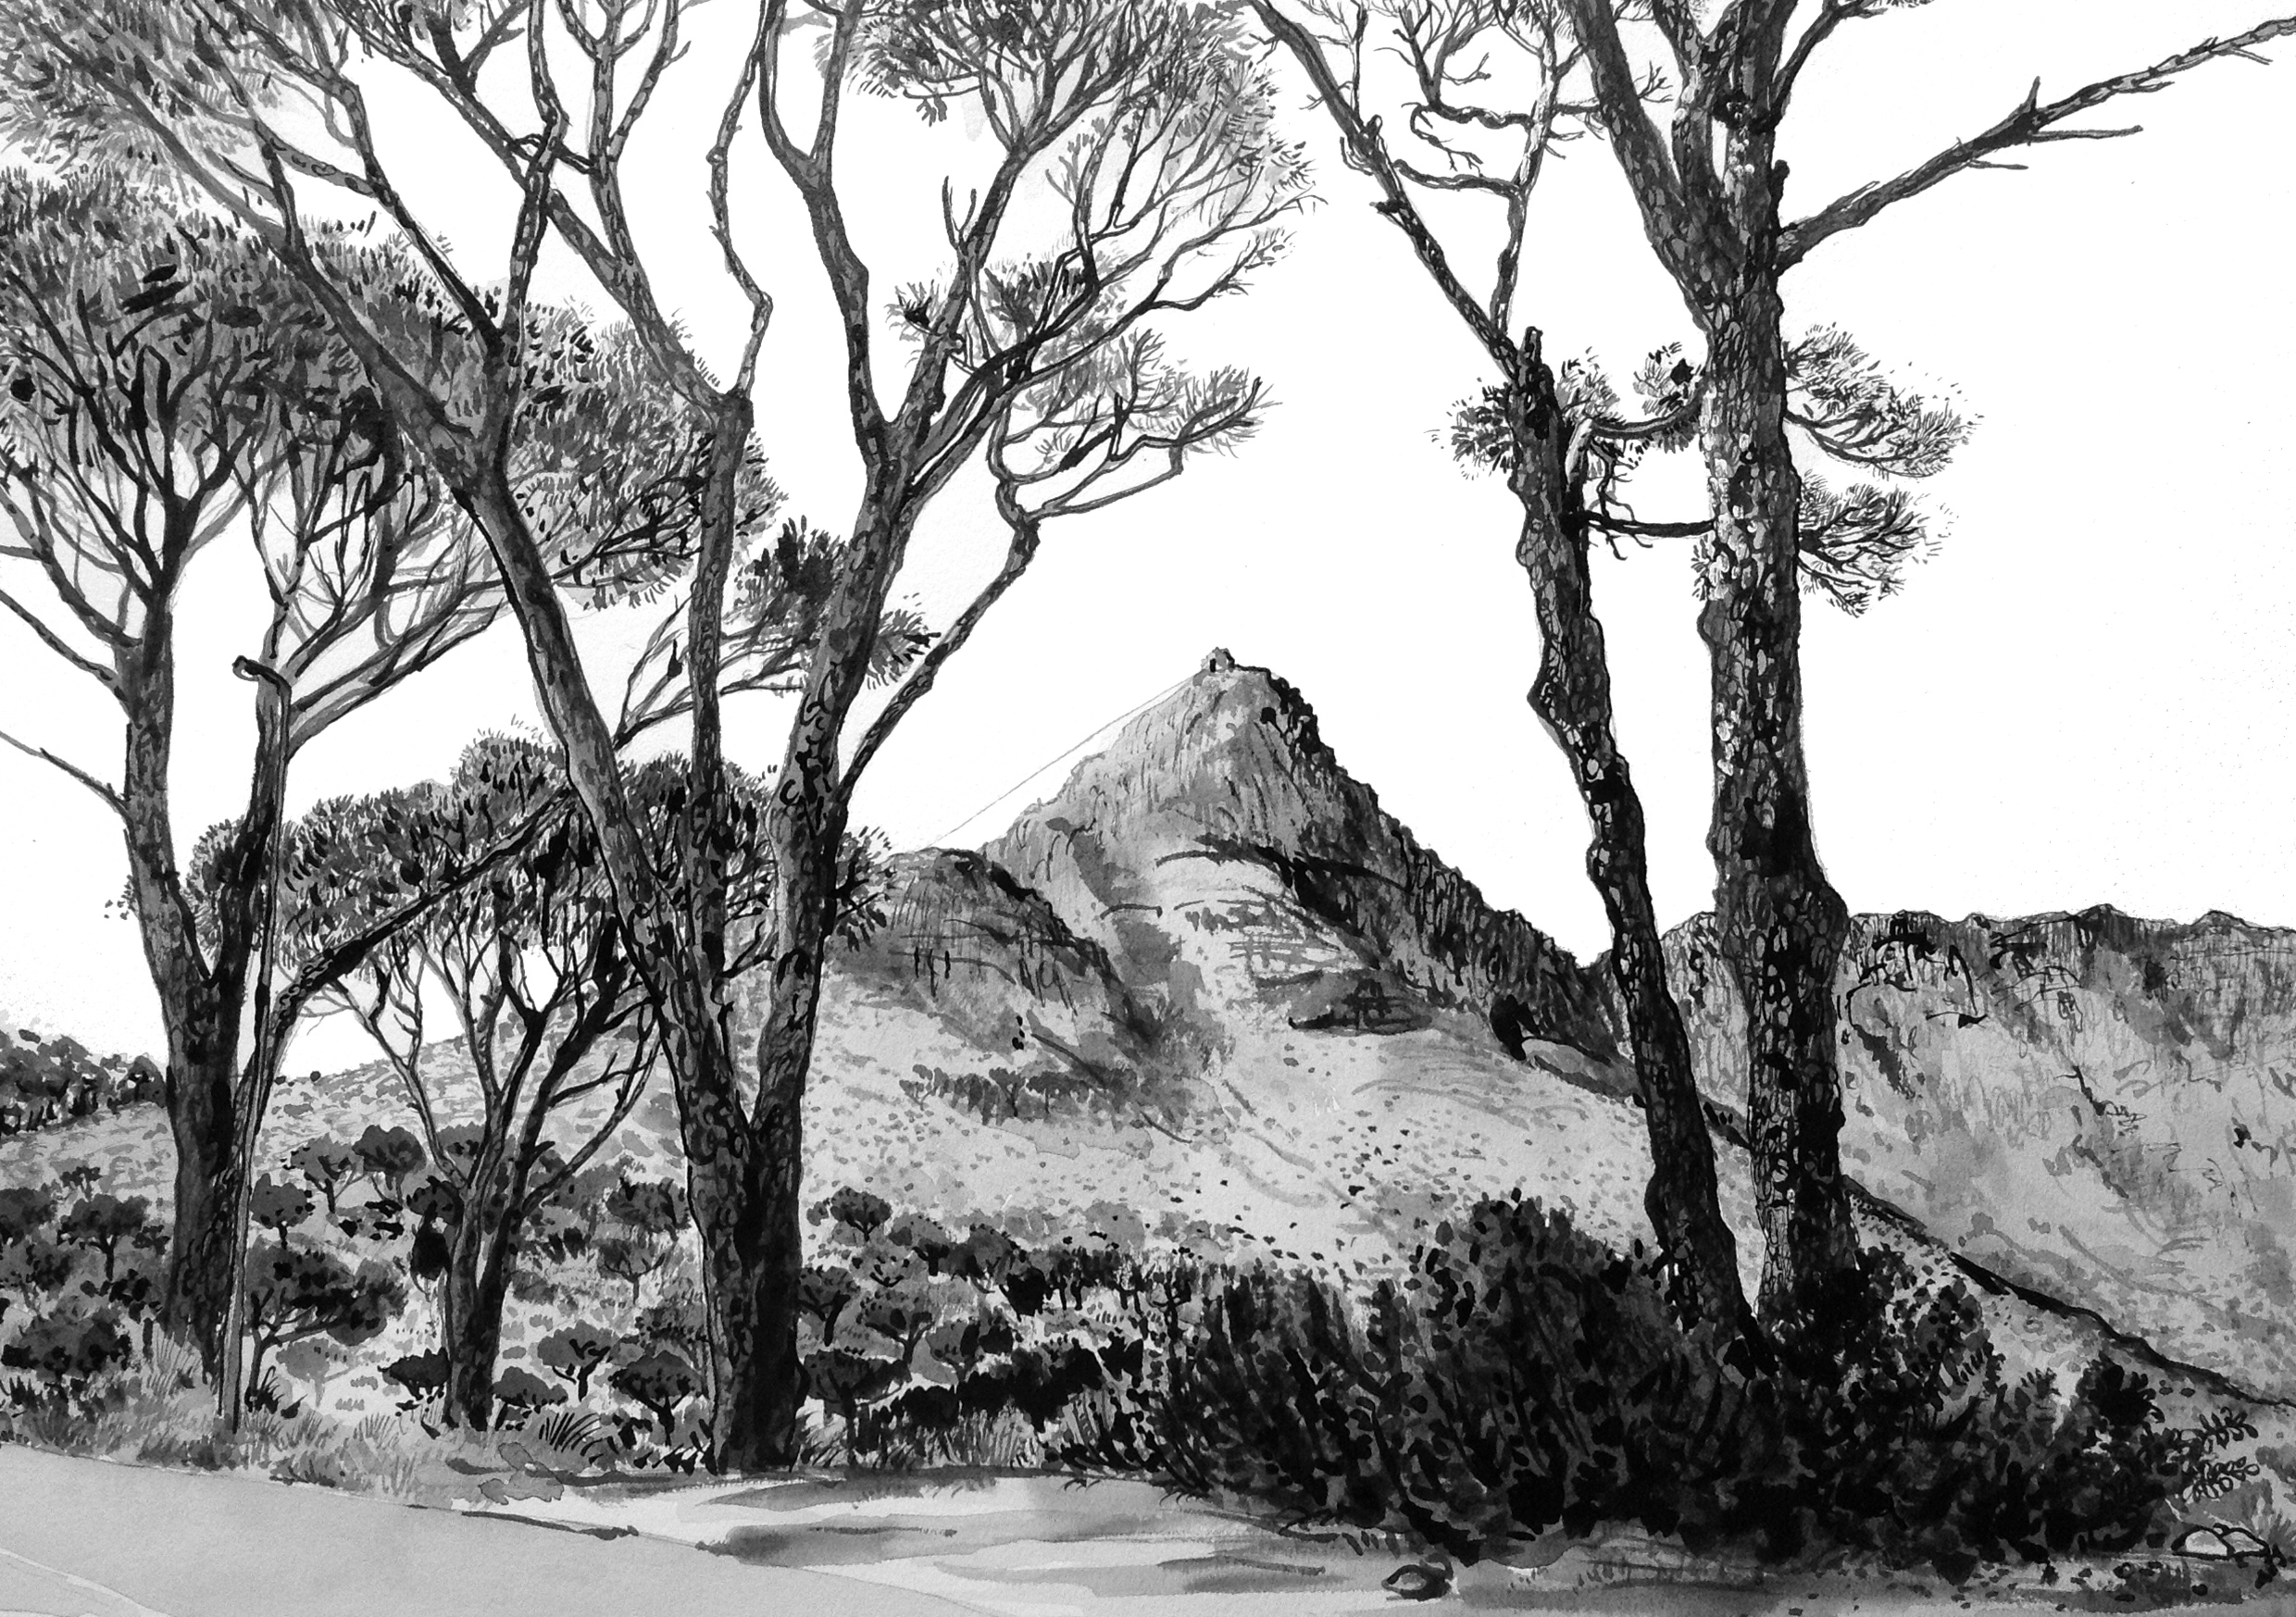 # 12 Kloof Road to Camps Bay